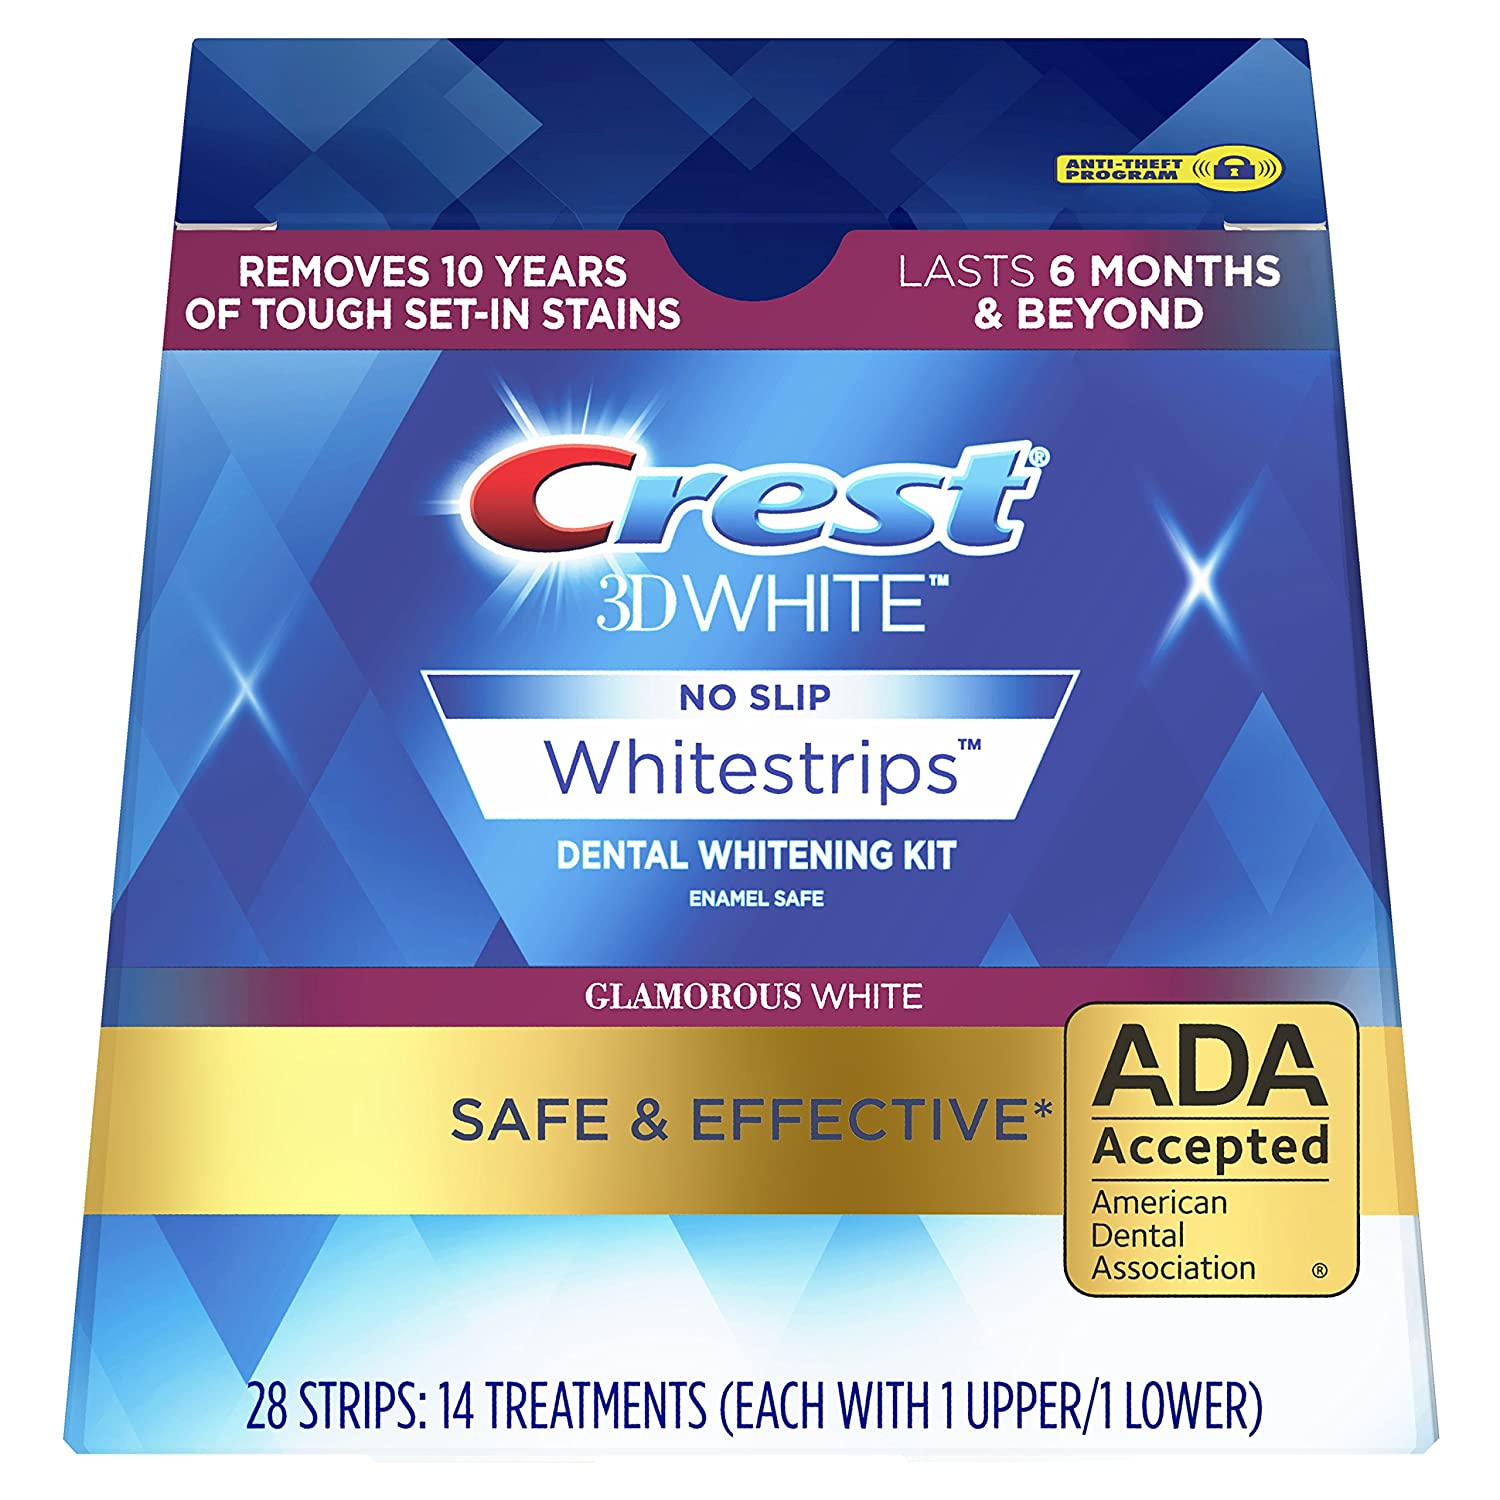 Amazoncom Crest D White Glamorous White Whitestrips Dental Teeth - Invoice statement template free rocco's online store